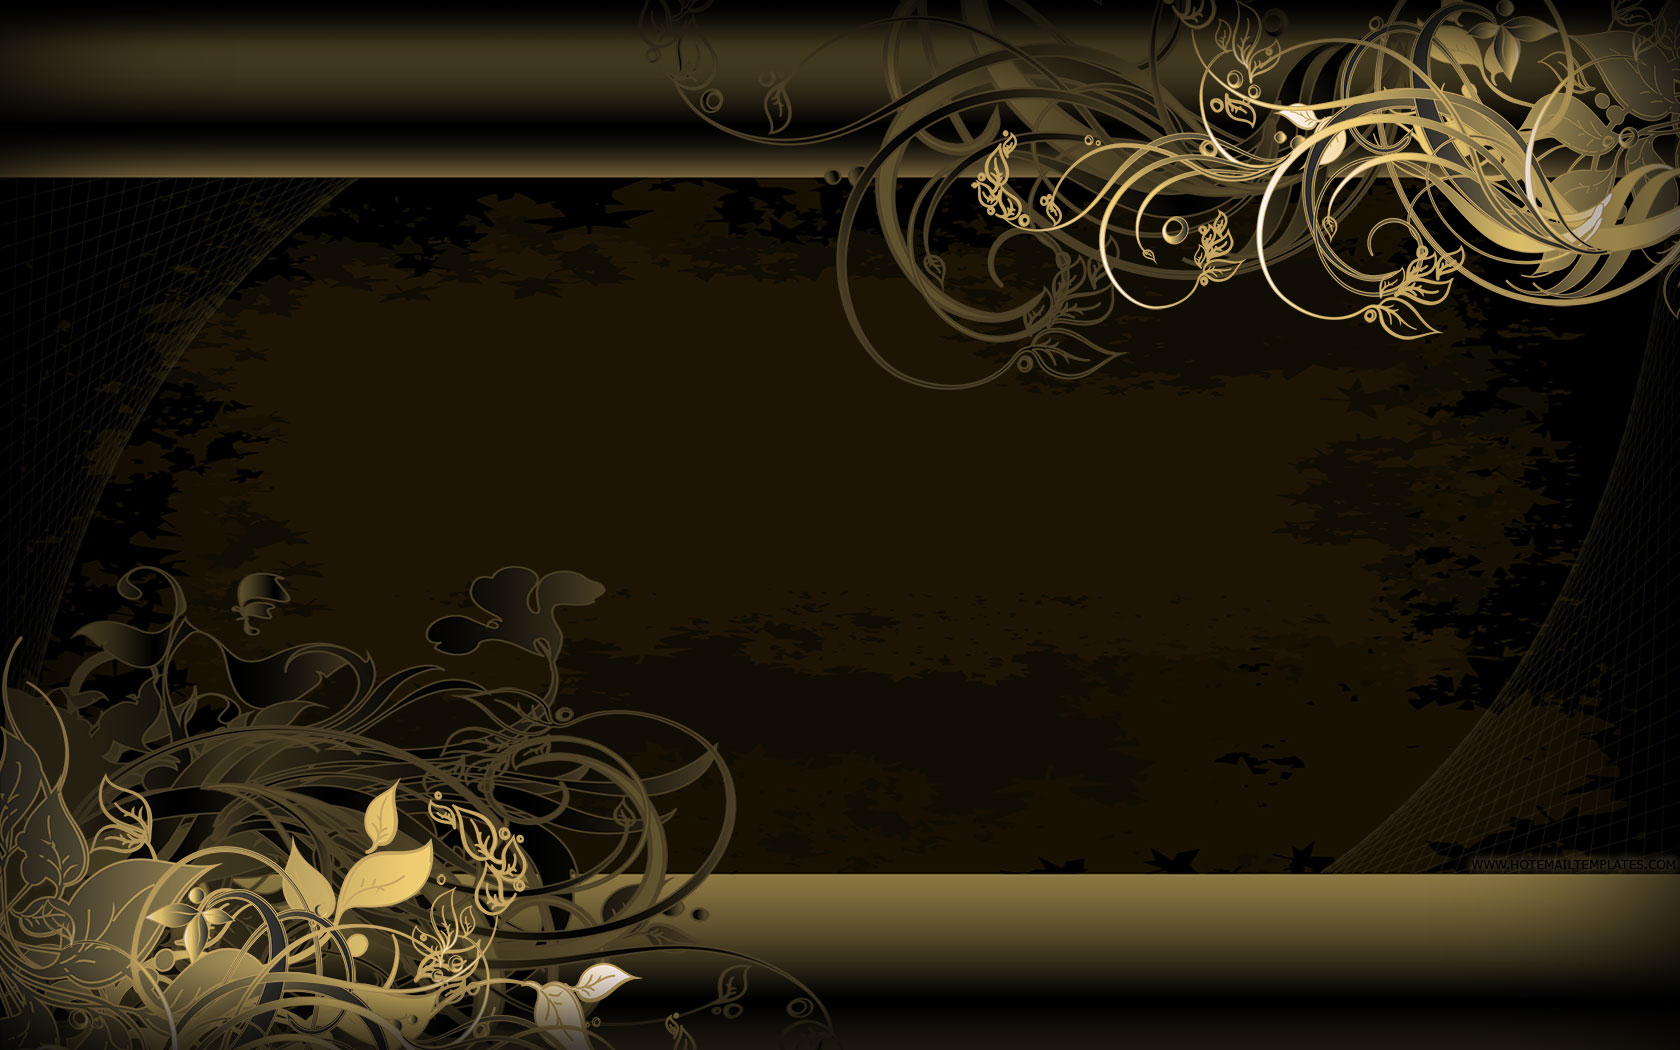 Gold vintage wallpaper free html e mail templates for Gold wallpaper designs